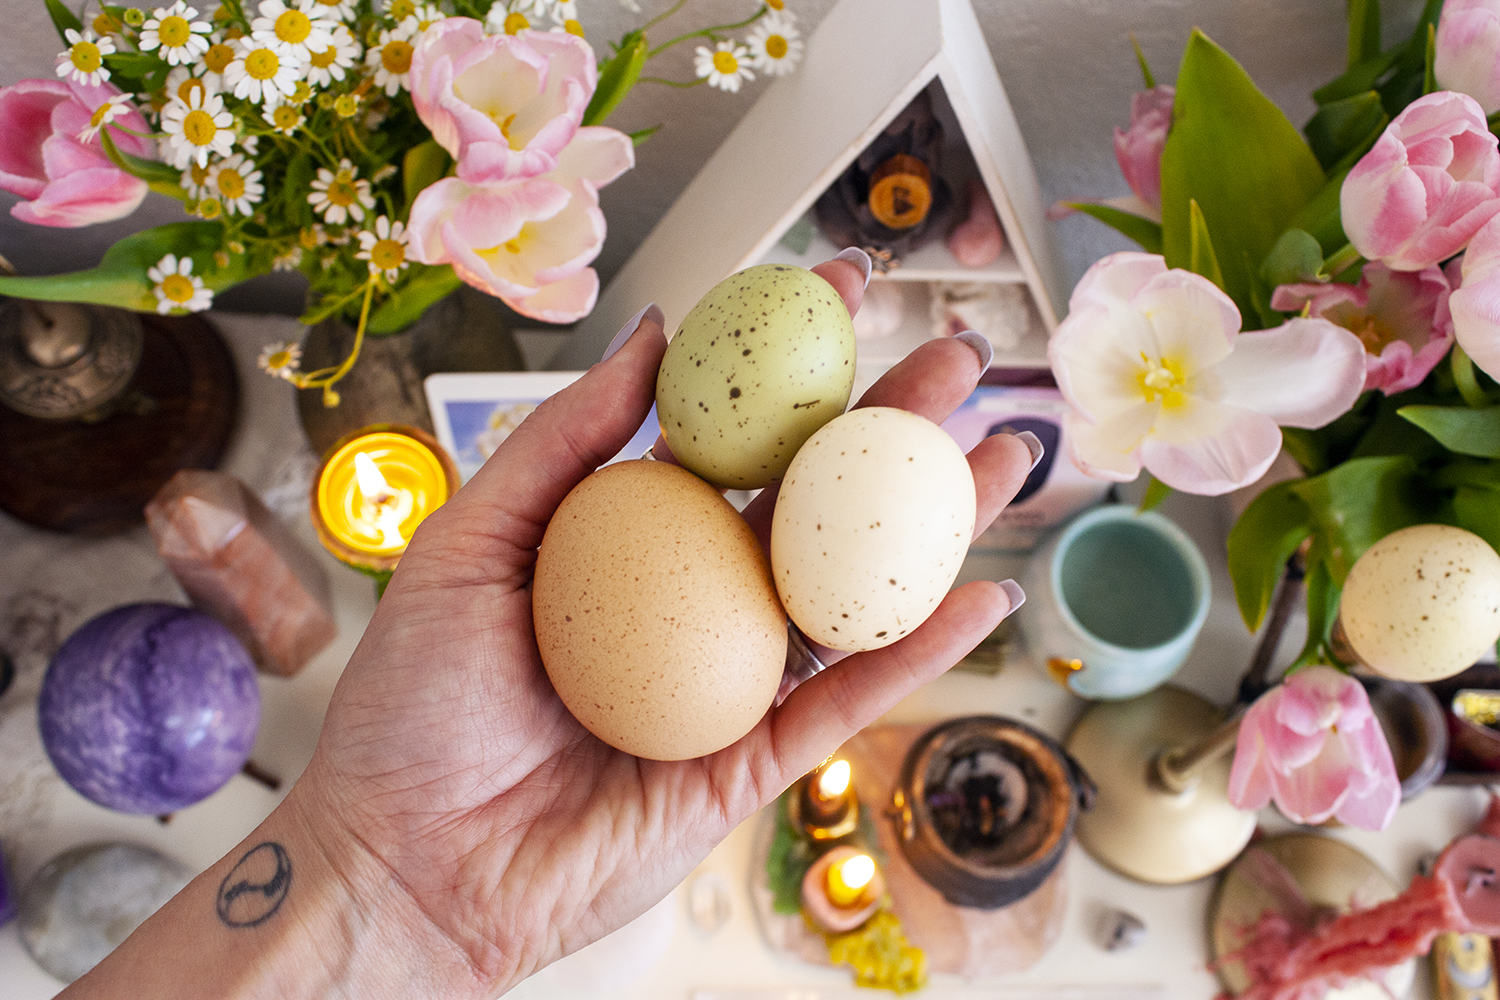 egg ritual for ostara egg magical history spring equinox rituals